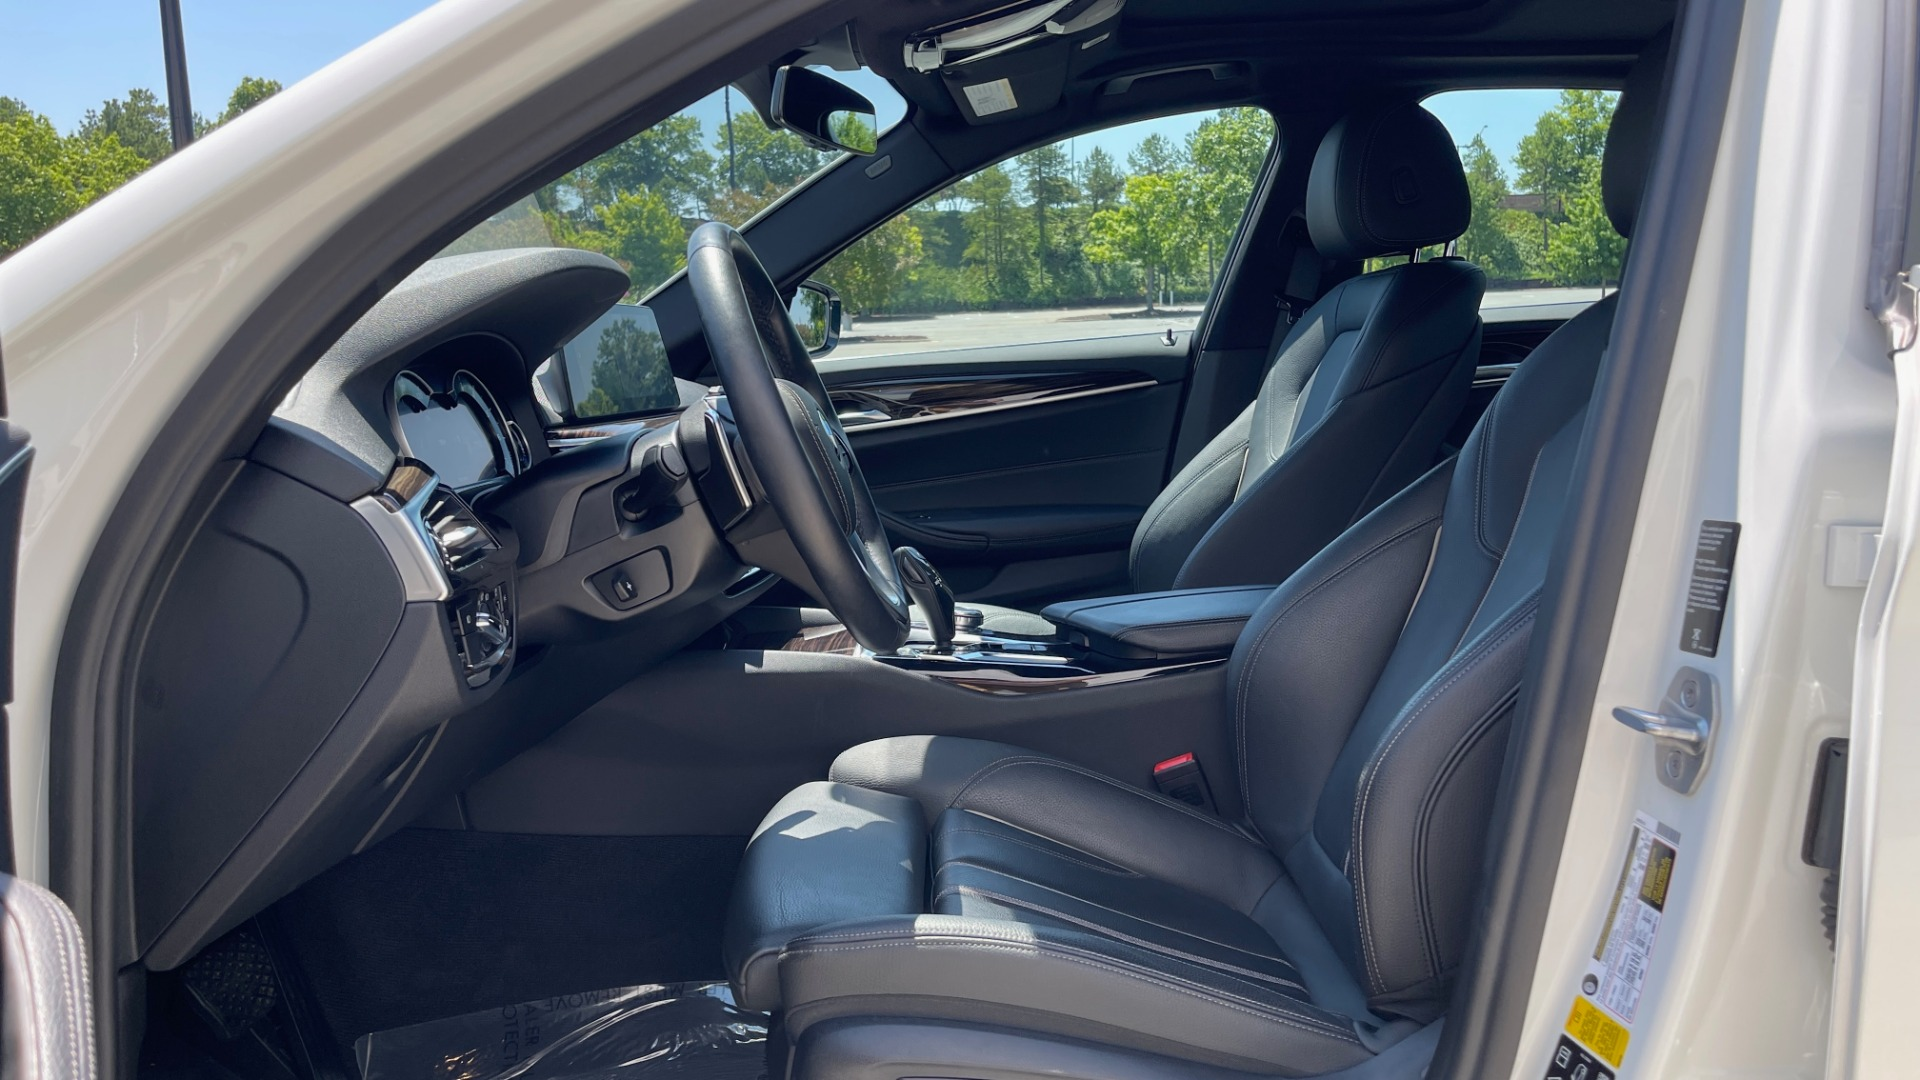 Used 2018 BMW 5 SERIES 540IXDRIVE PREMIUM / PARK ASSIST / KEYLESS ENTRY / SUNROOF / REARVIEW for sale $42,995 at Formula Imports in Charlotte NC 28227 29